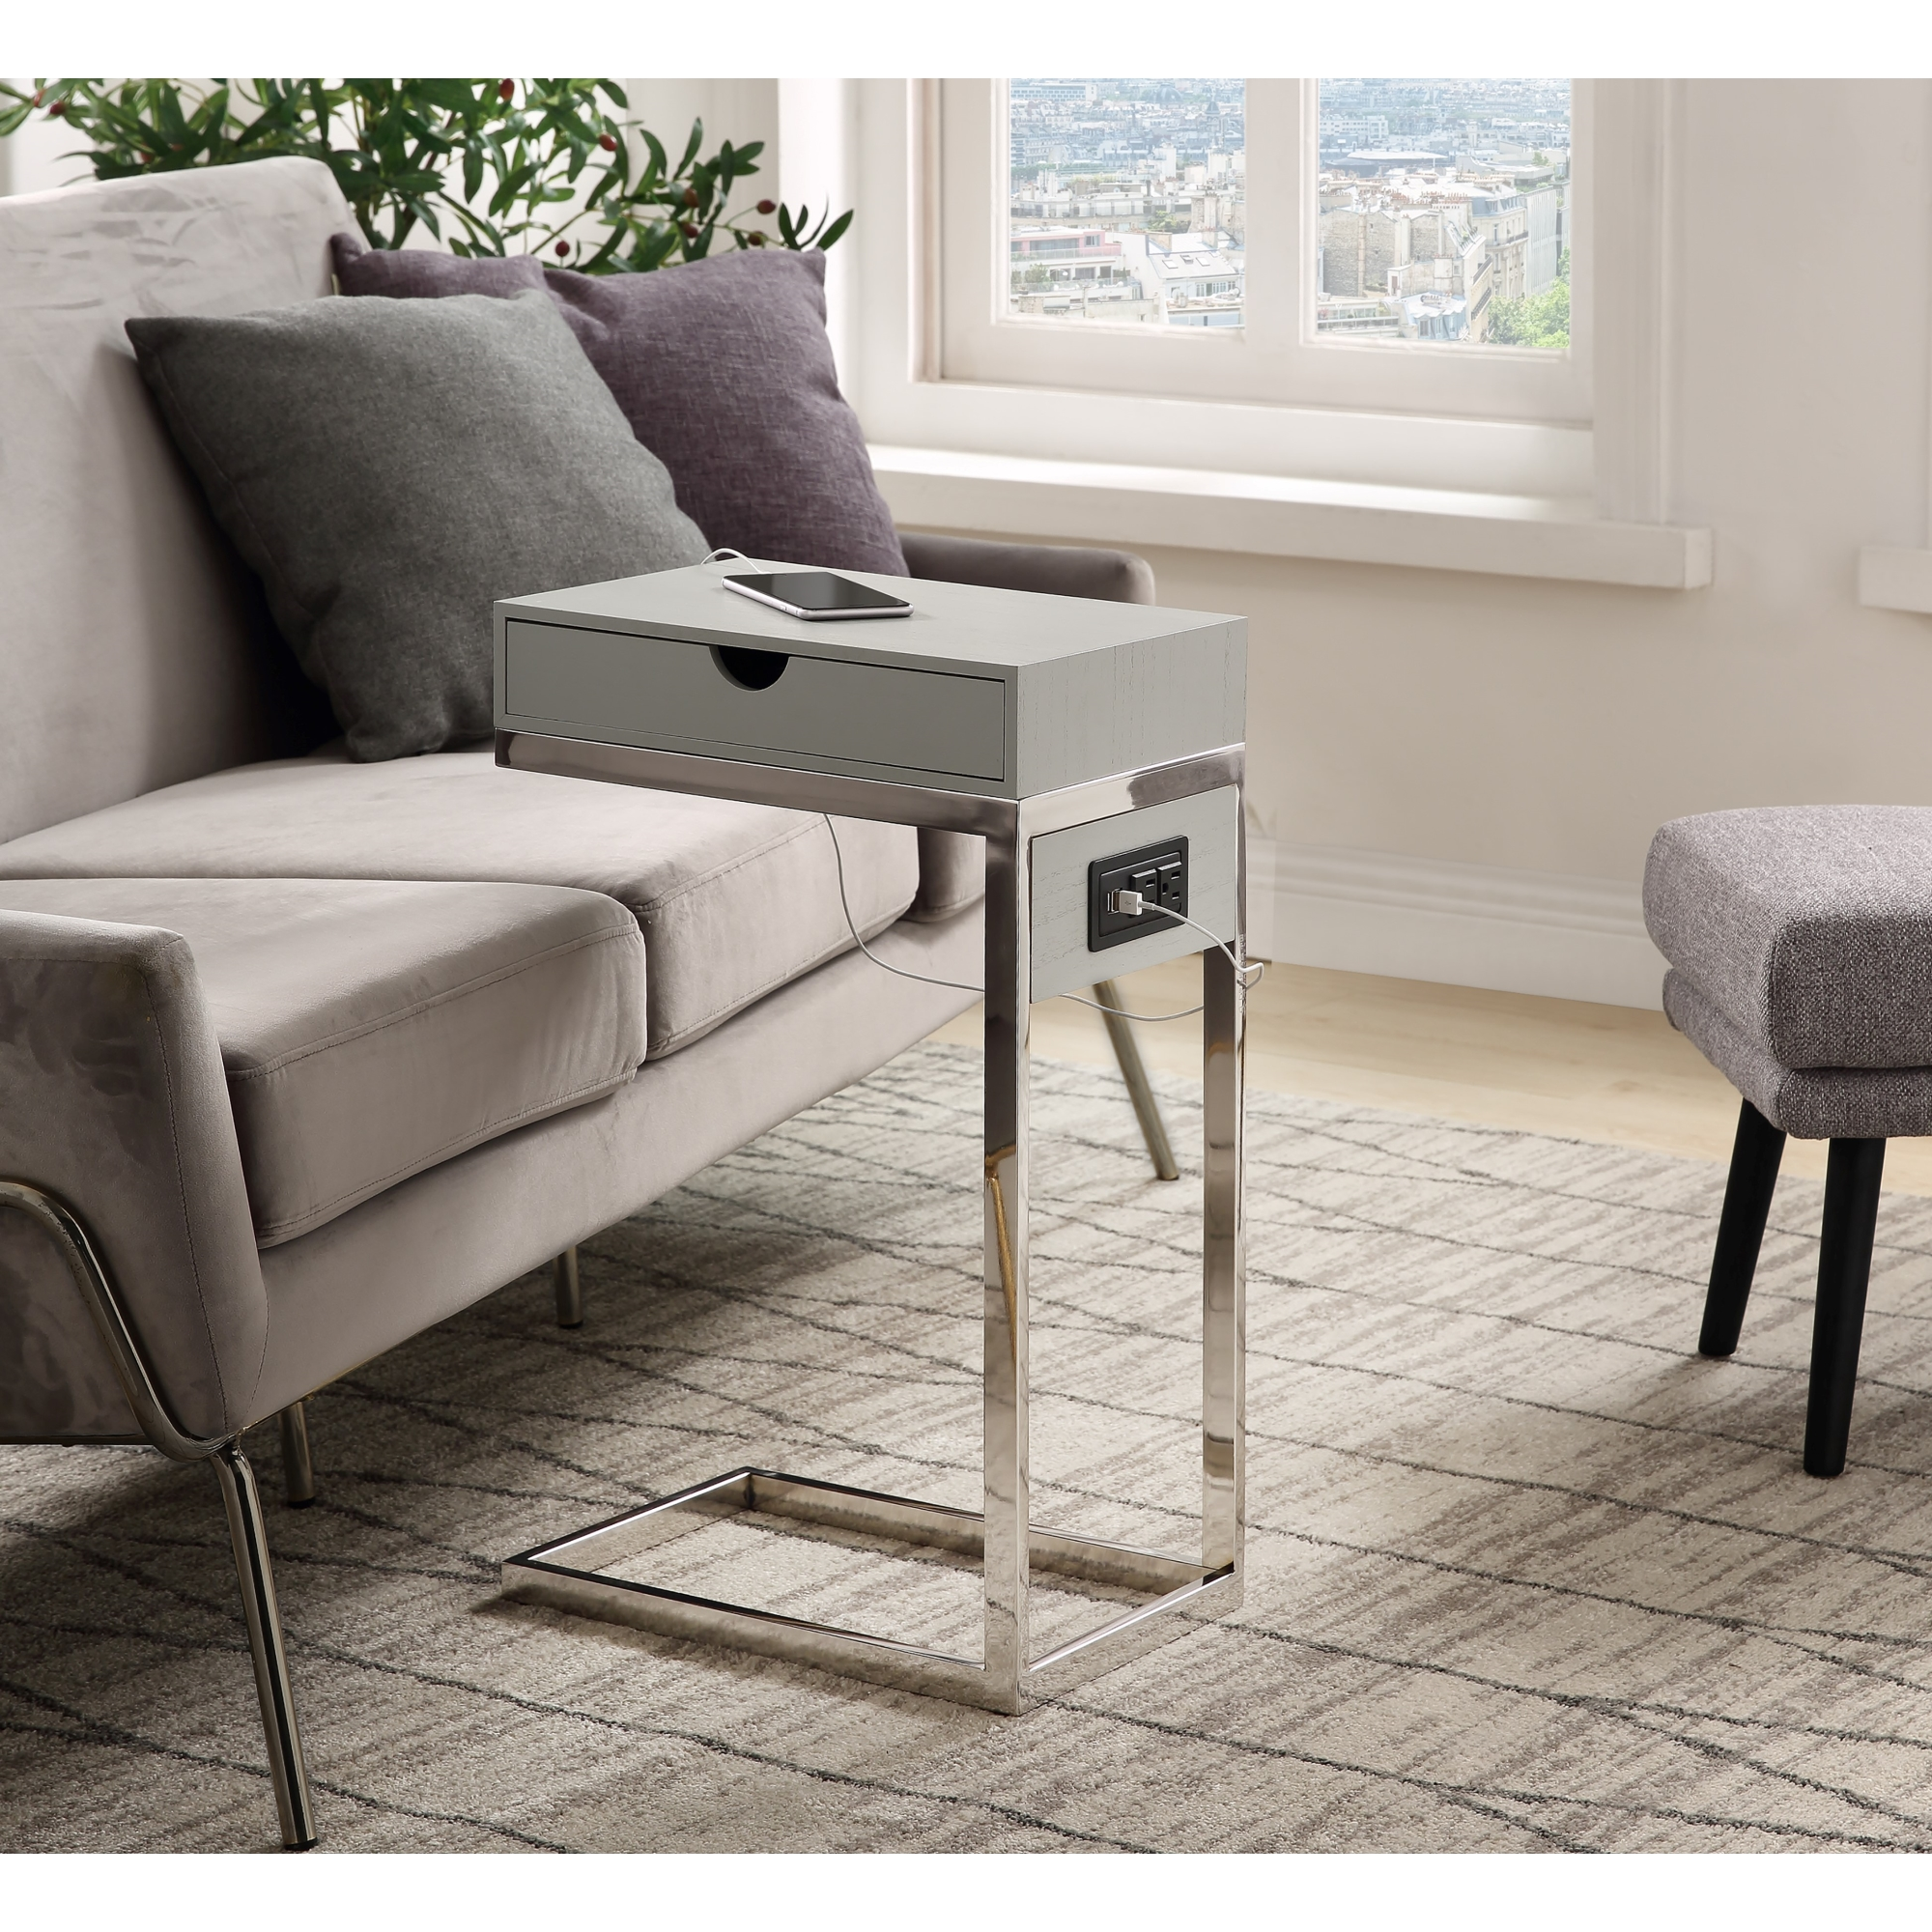 Loft Lyfe Grey/Chrome End Table 2 USB Charging Ports, 2 Outlets, Power Plug 1 Drawer